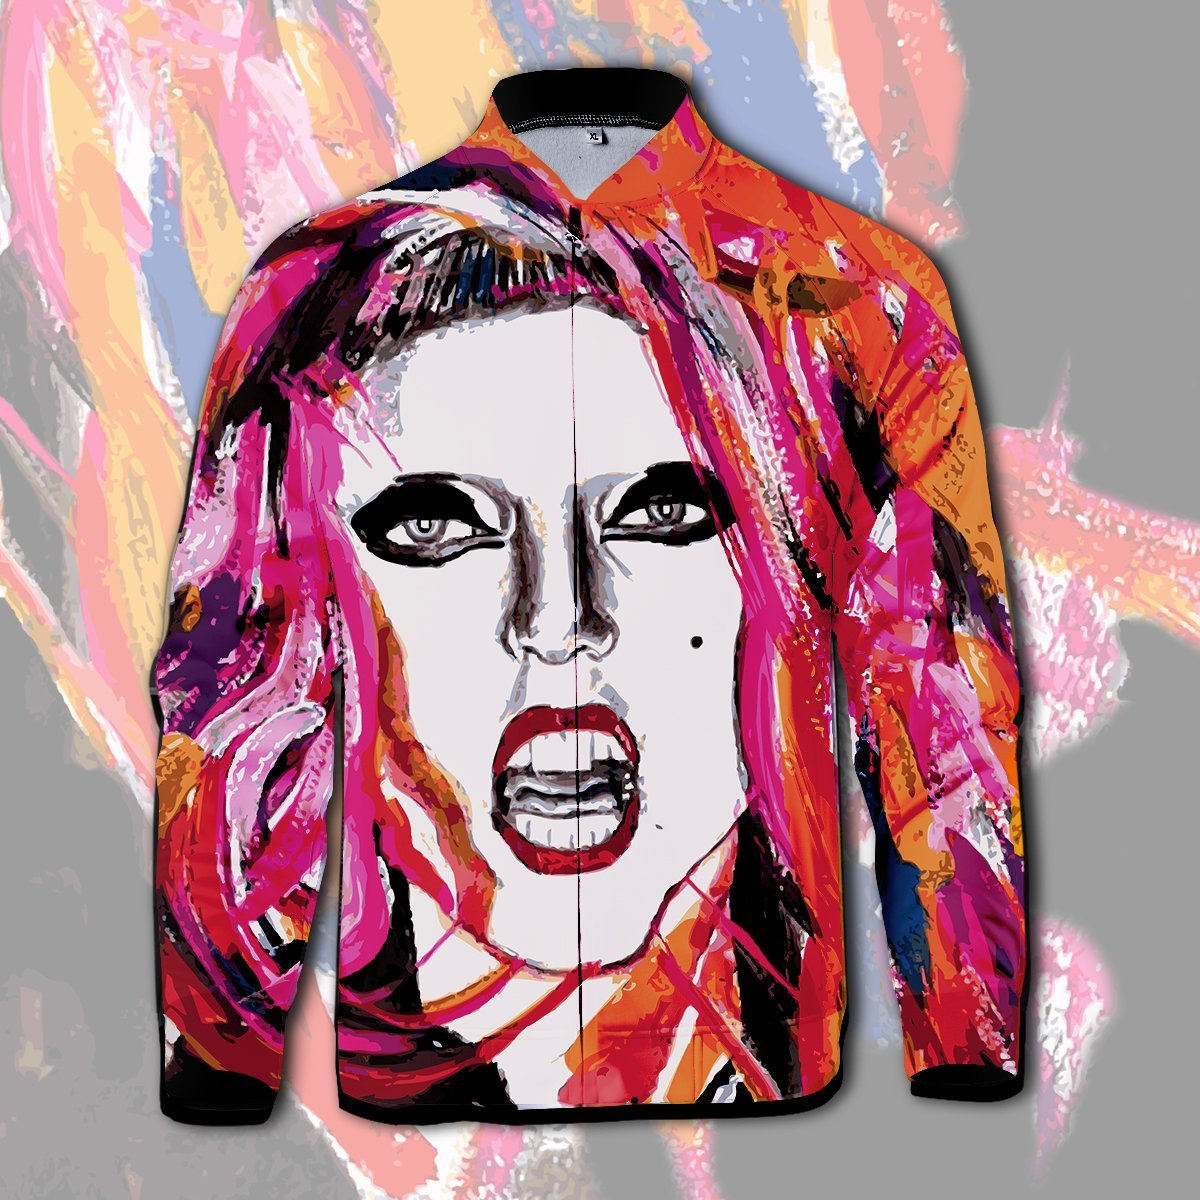 Mother Monster Zipped Jacket S